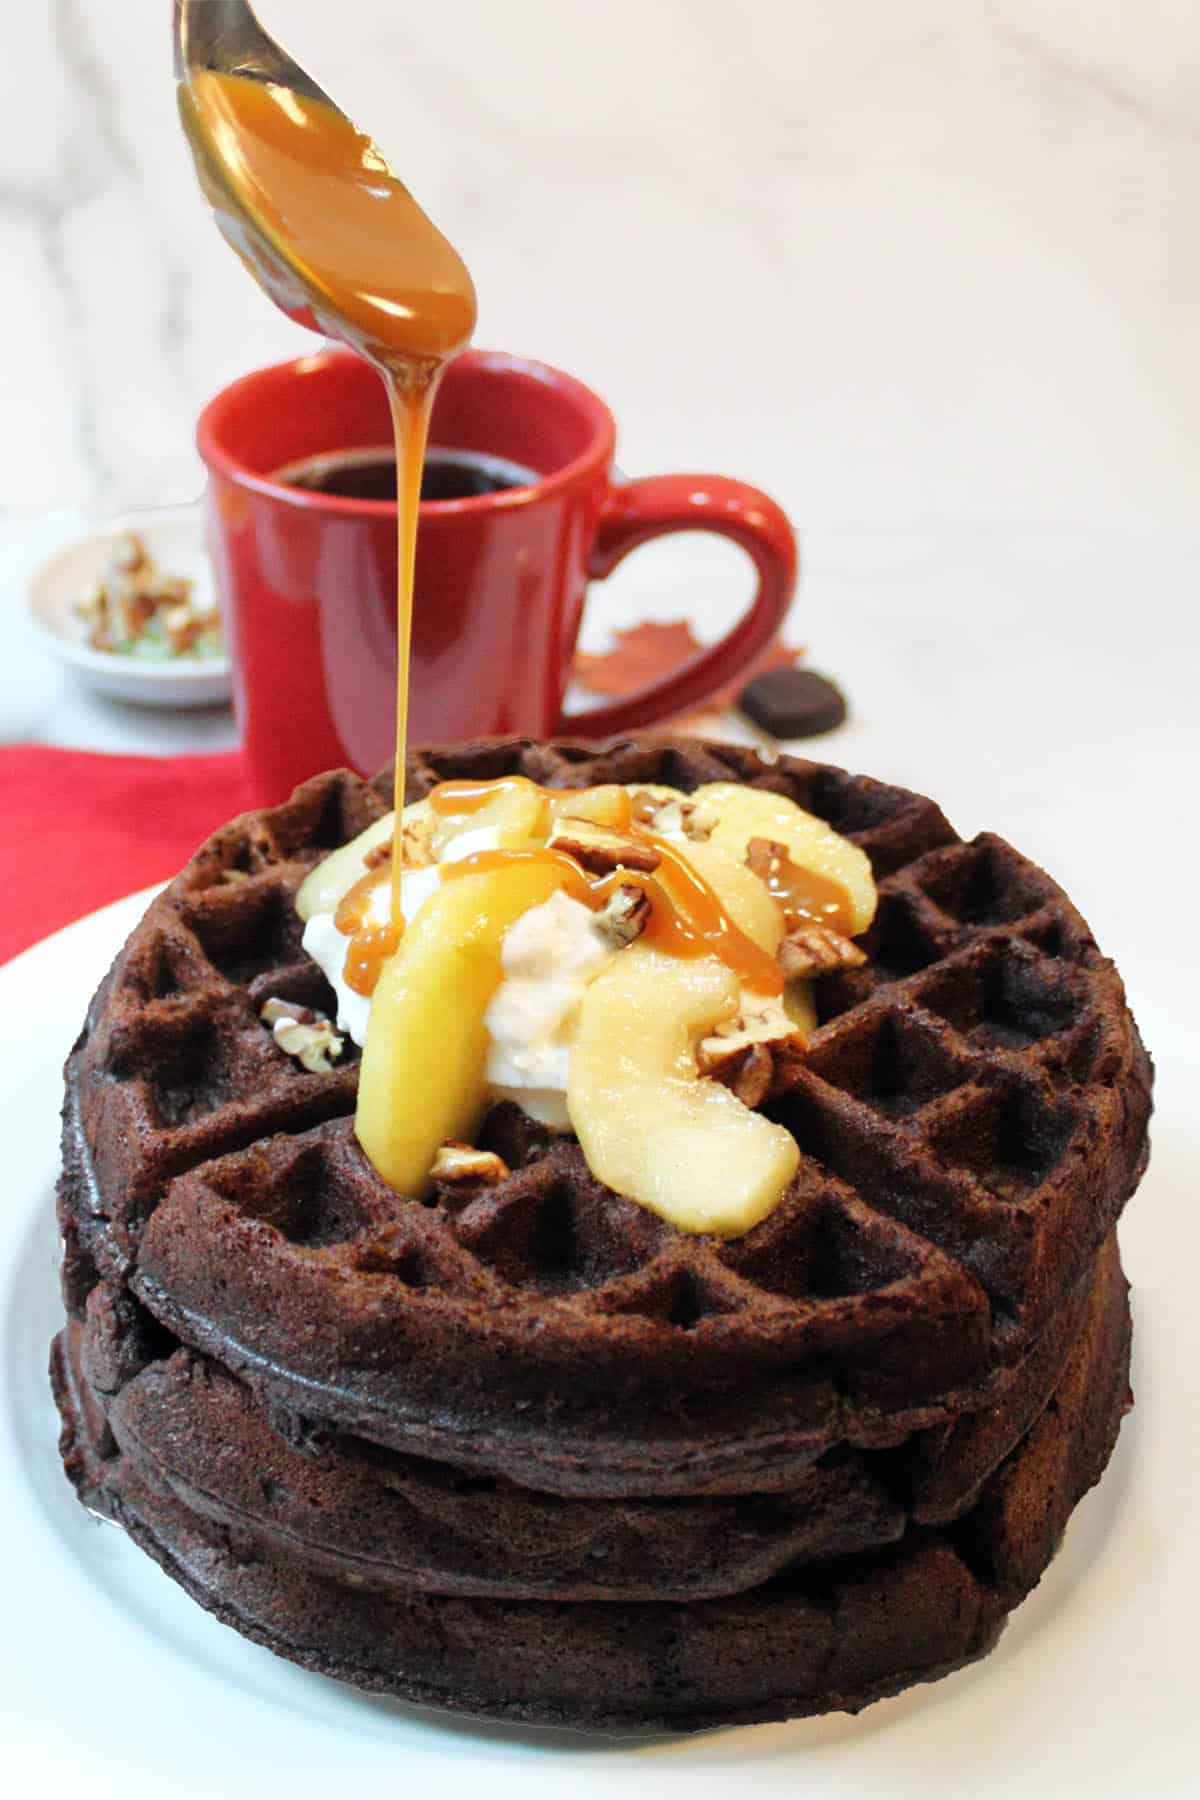 Drizzling caramel sauce over waffles.